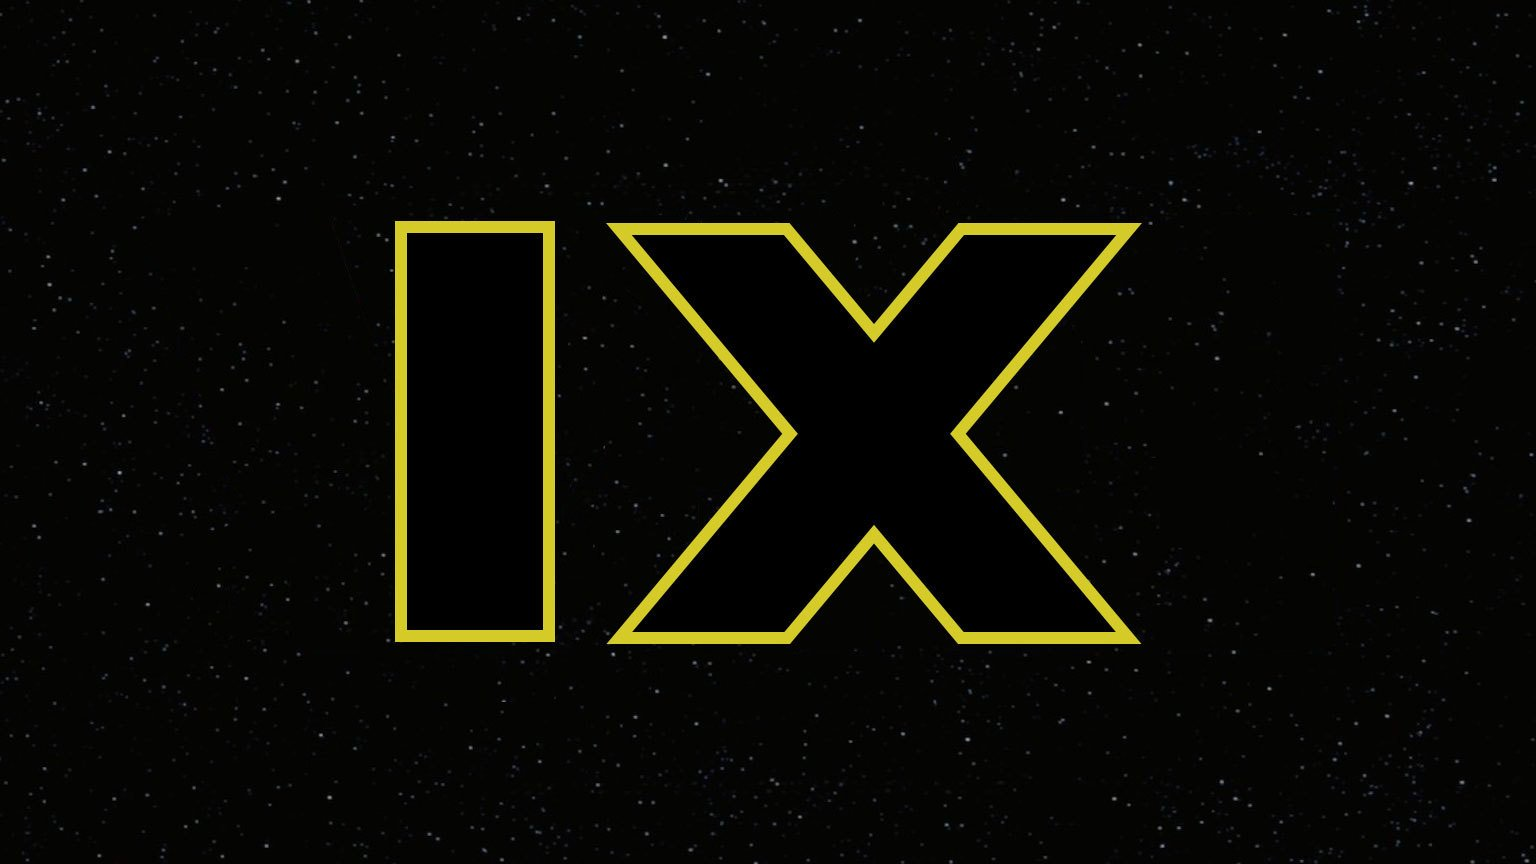 Disney Announces Release Dates for Star Wars: Episode IX and Indiana Jones Movies!